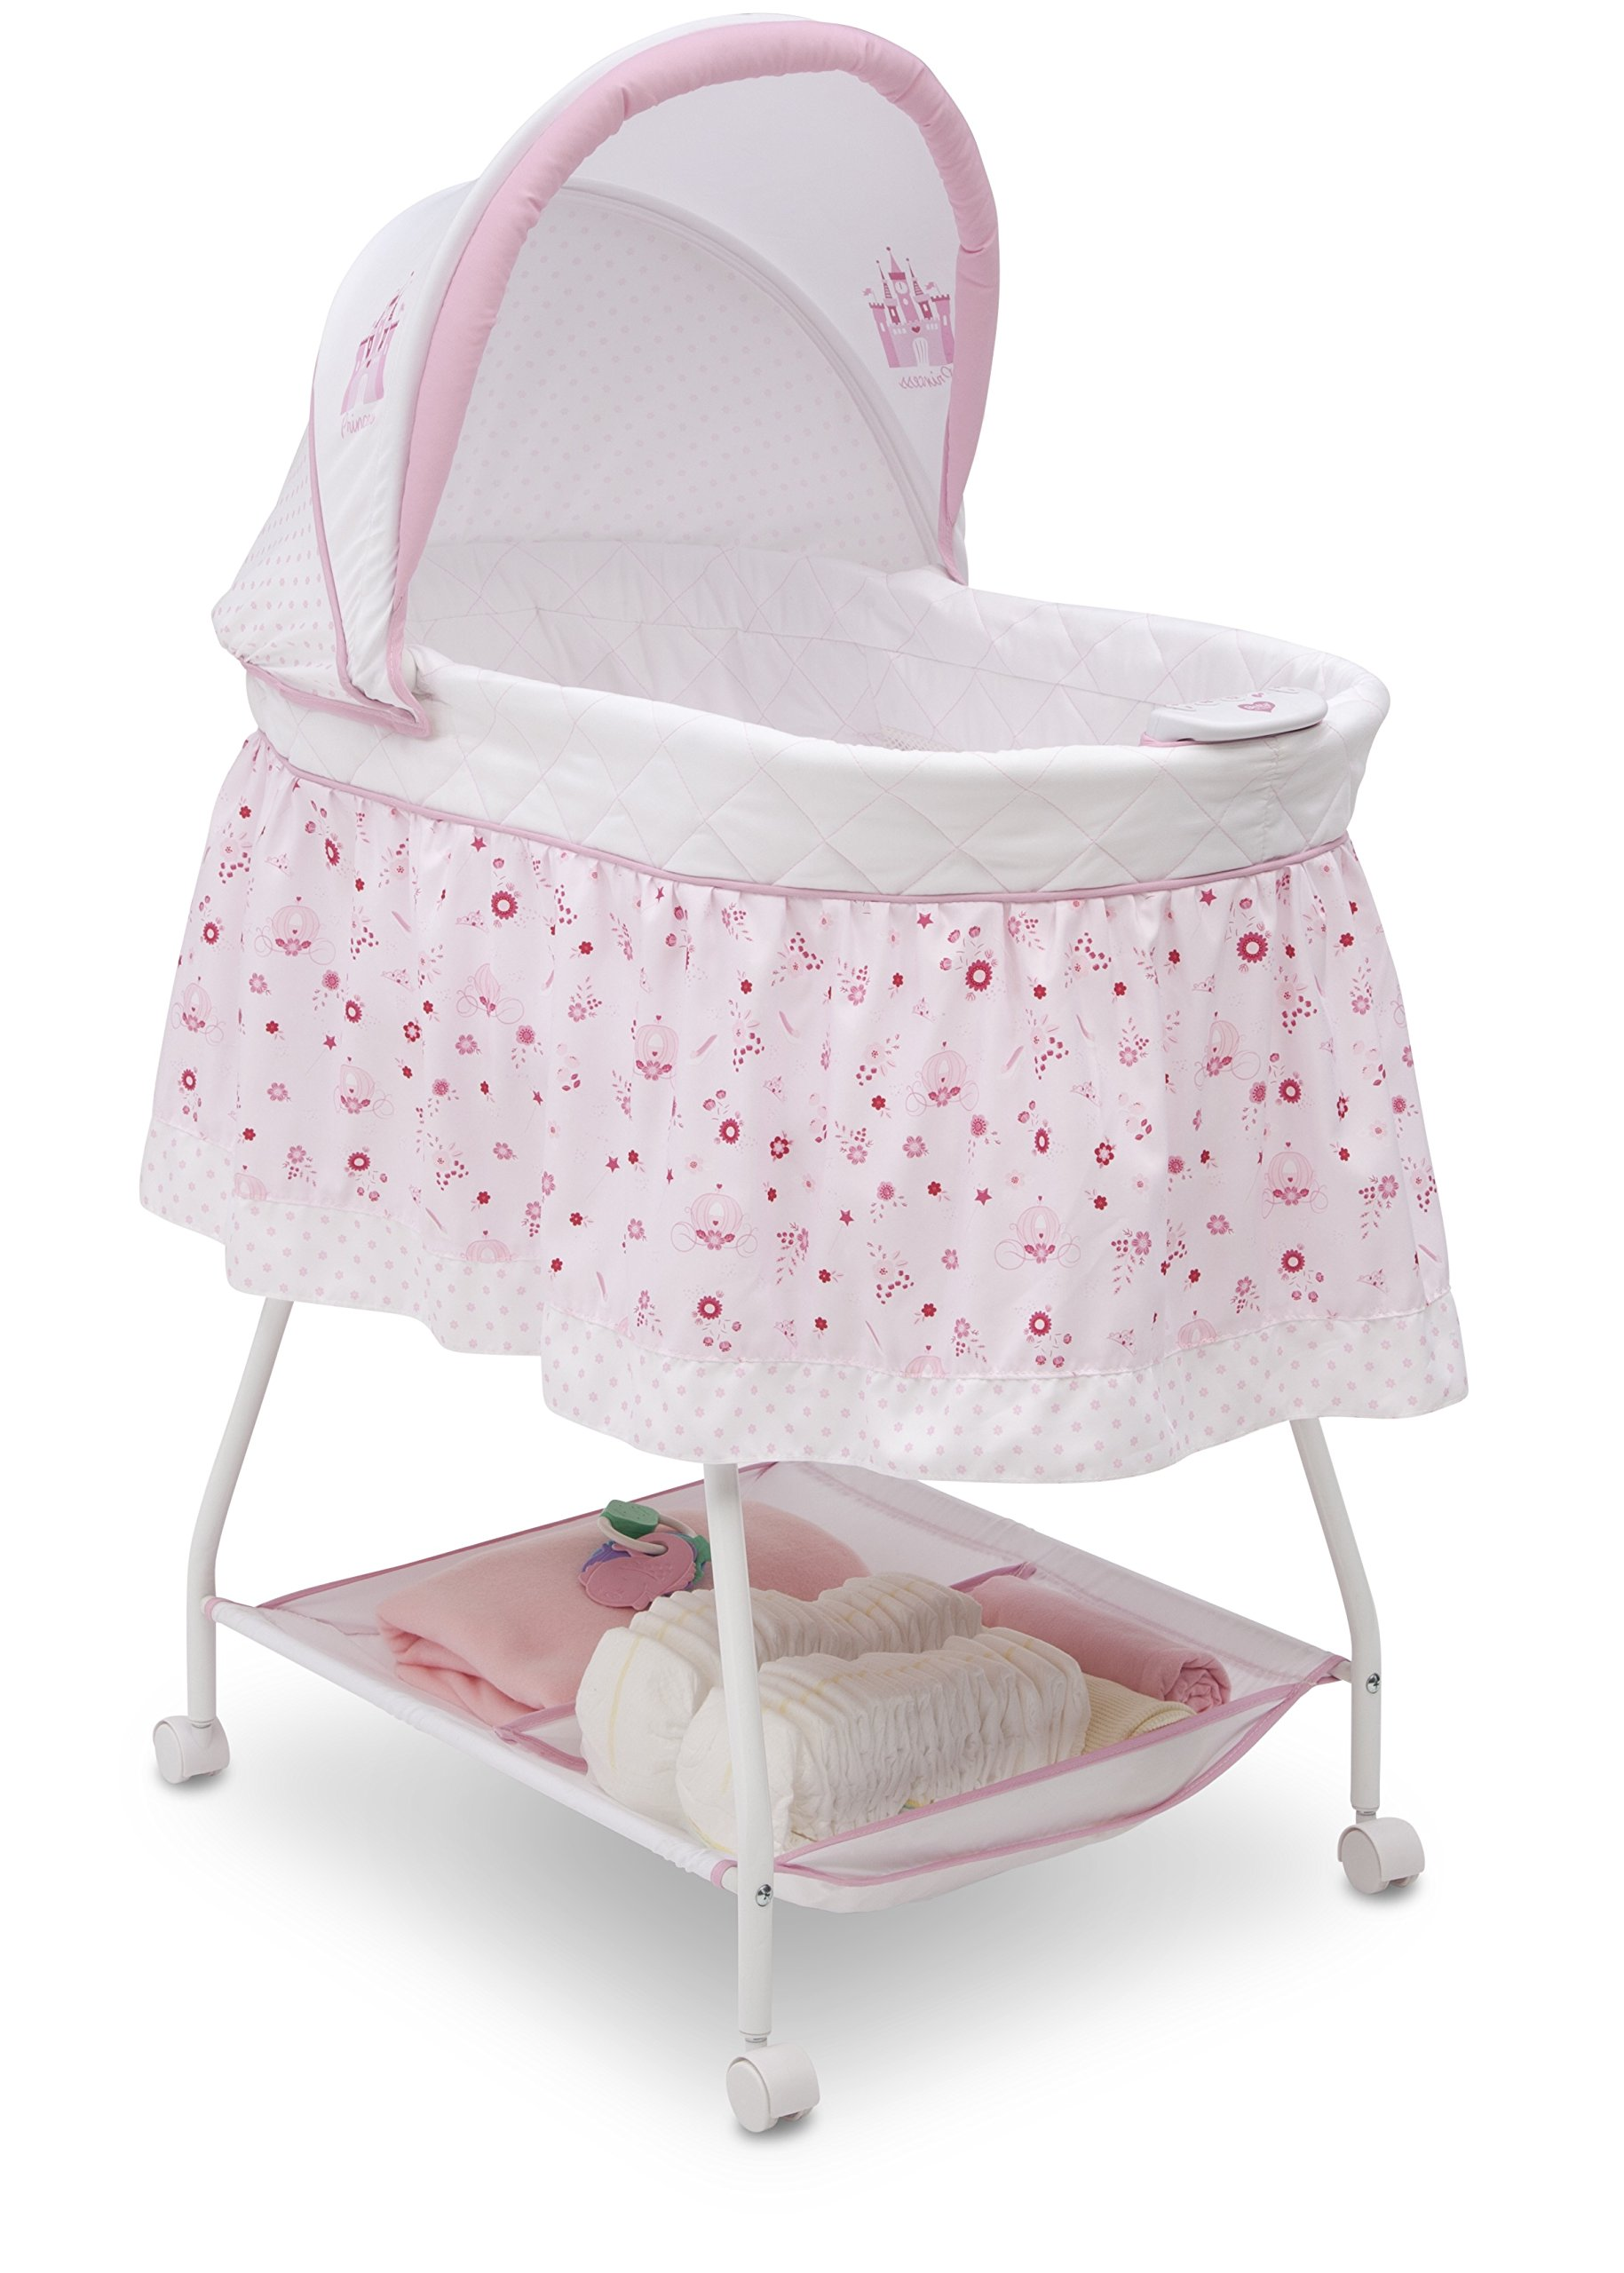 Disney Baby Ultimate Sweet Beginnings Bassinet, Disney Princess by Disney